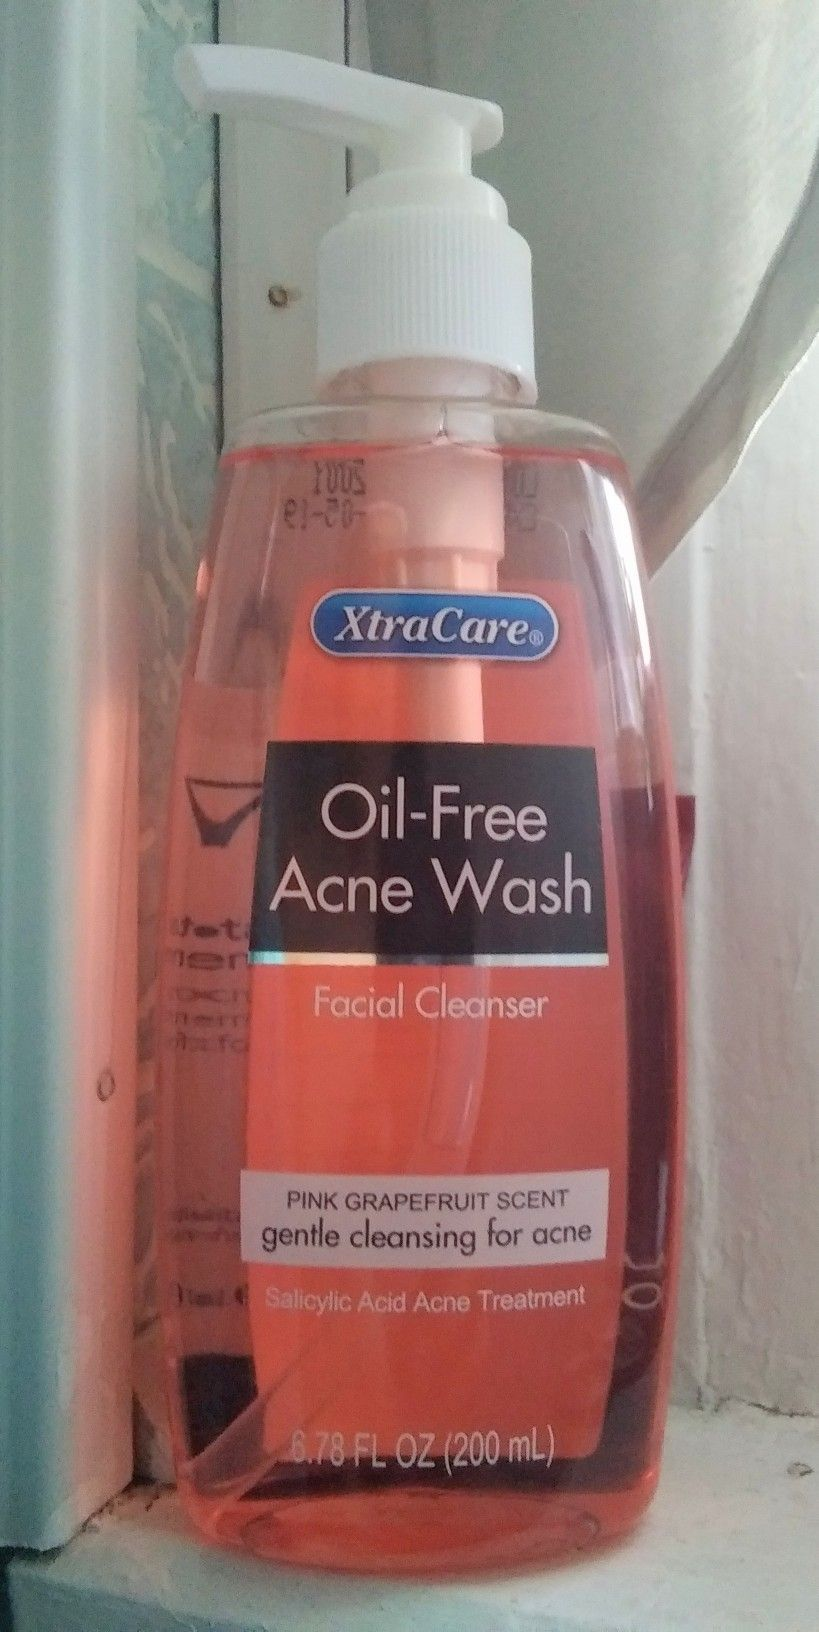 Hollar Com Xtracare Oil Free Acne Wash Facial Cleanser Pink